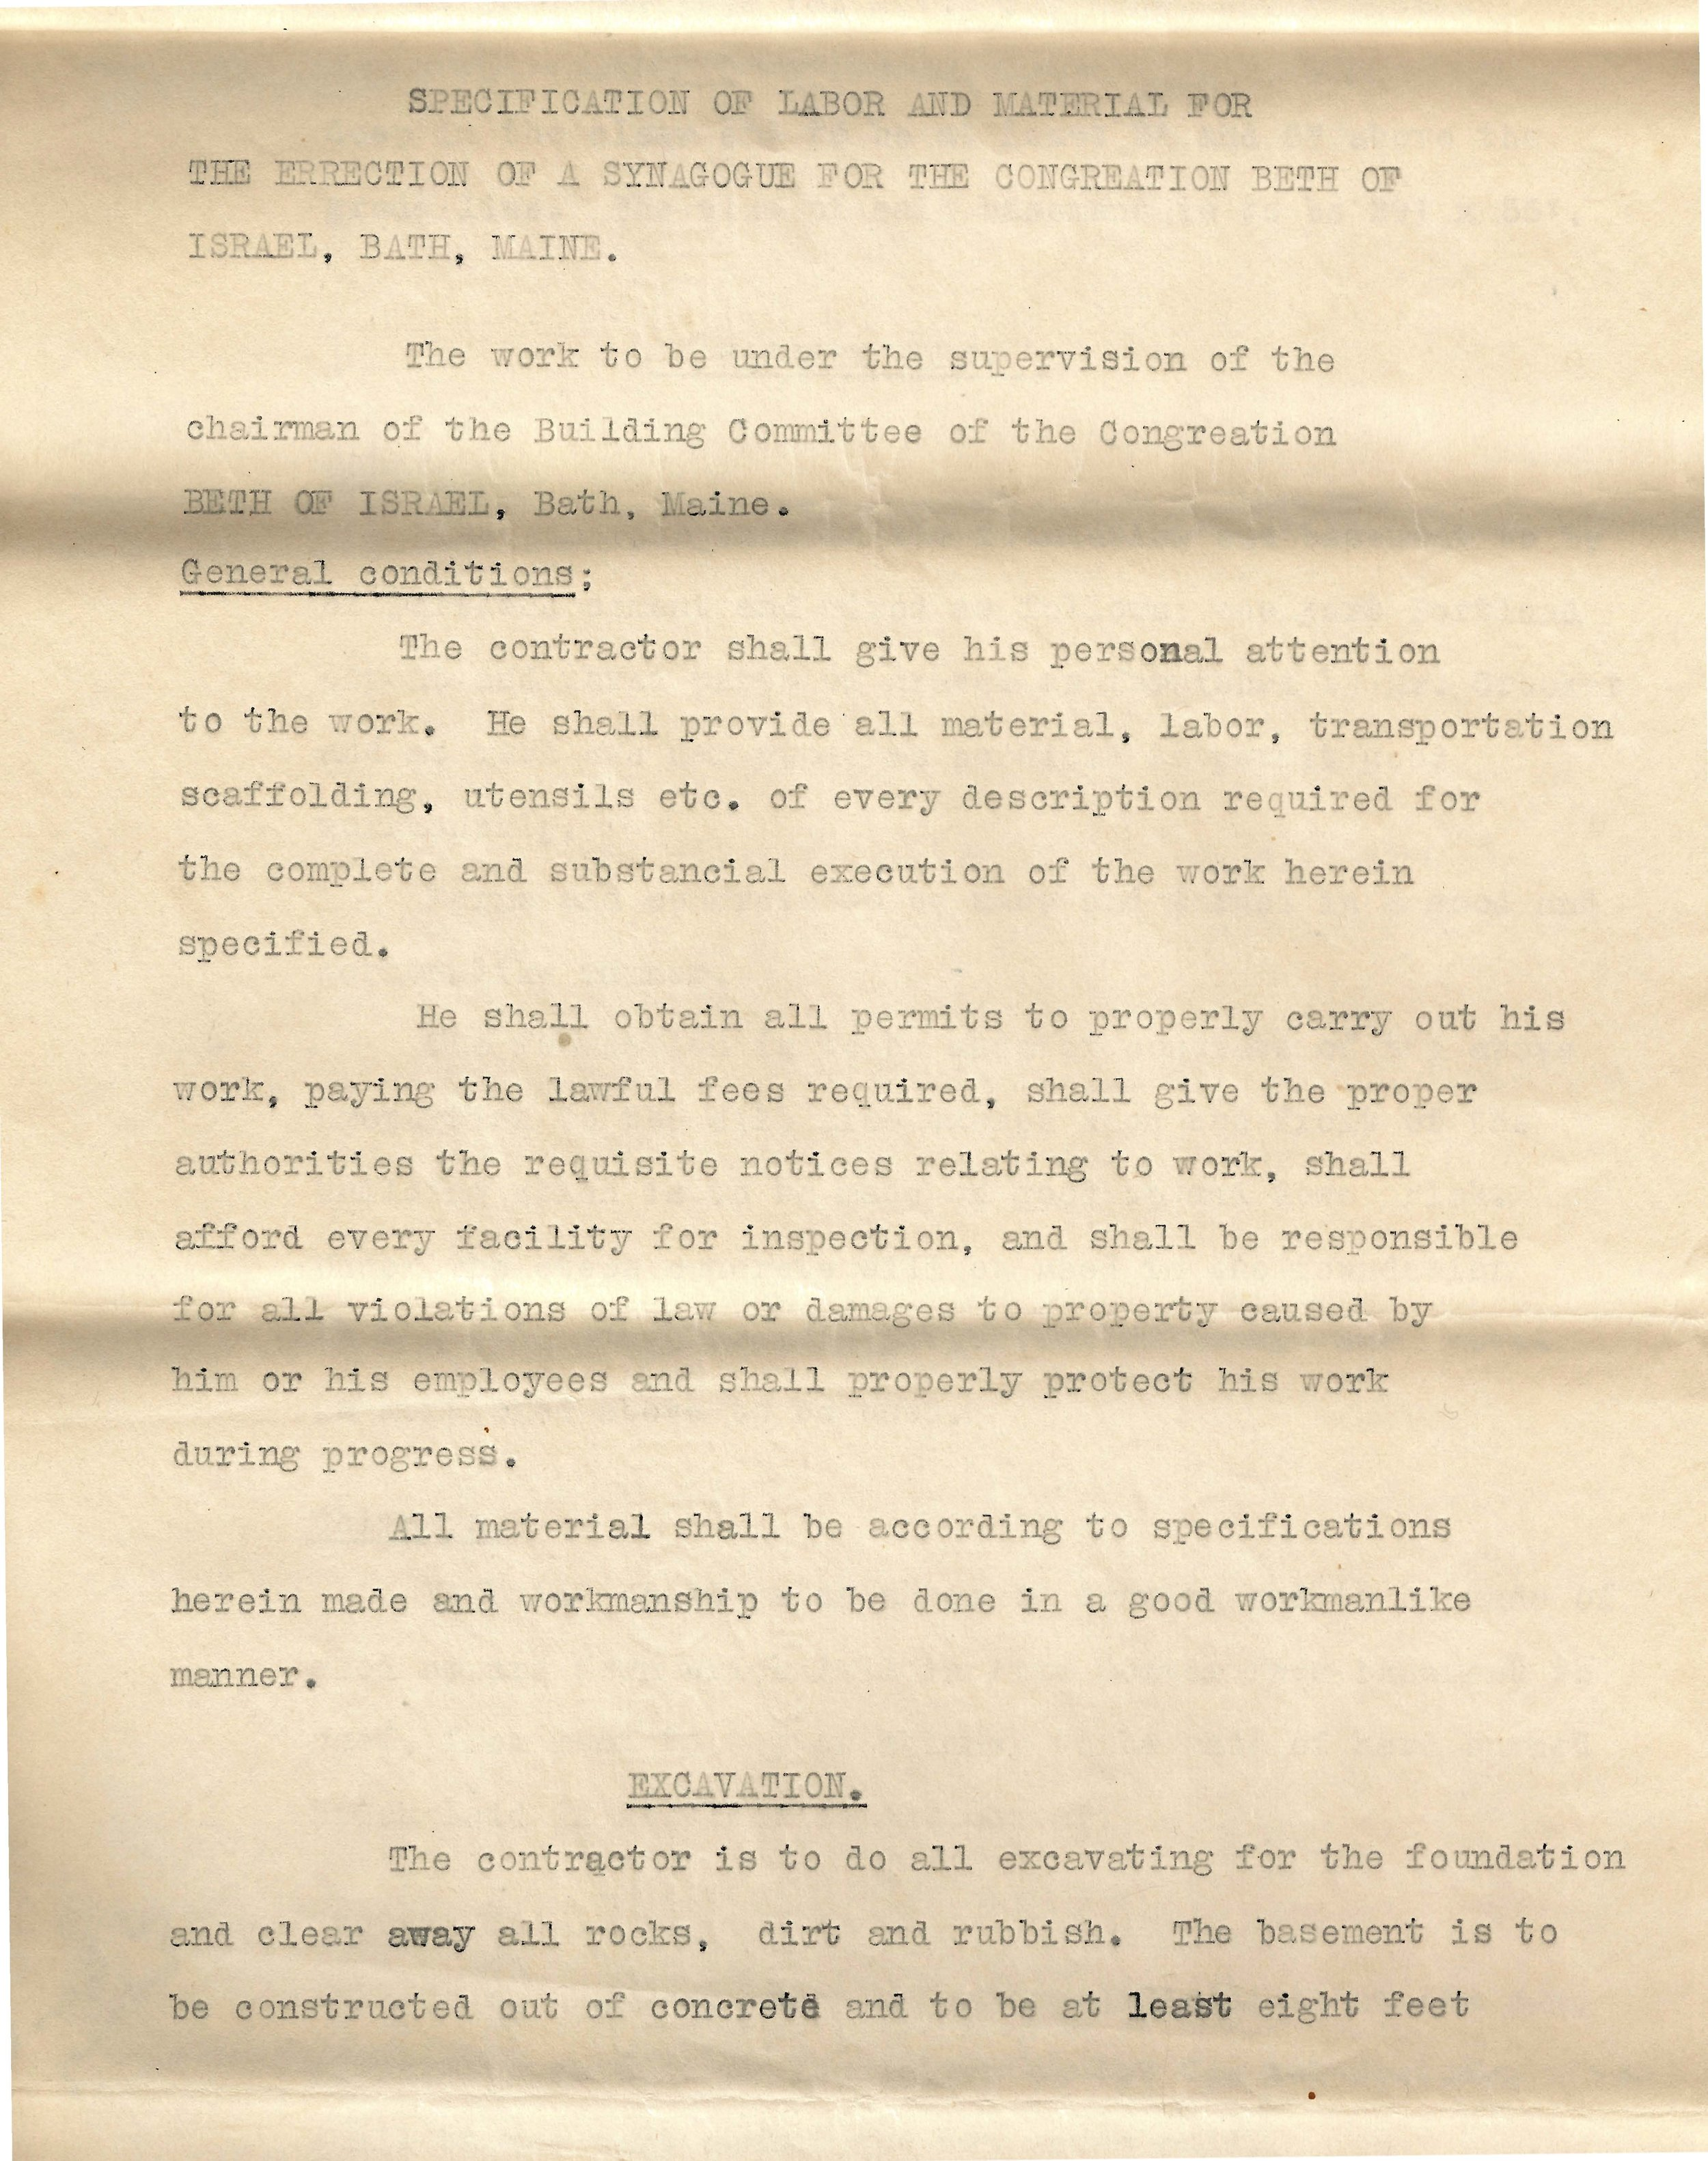 Contractor Agreement (1921)_Page_06.jpg